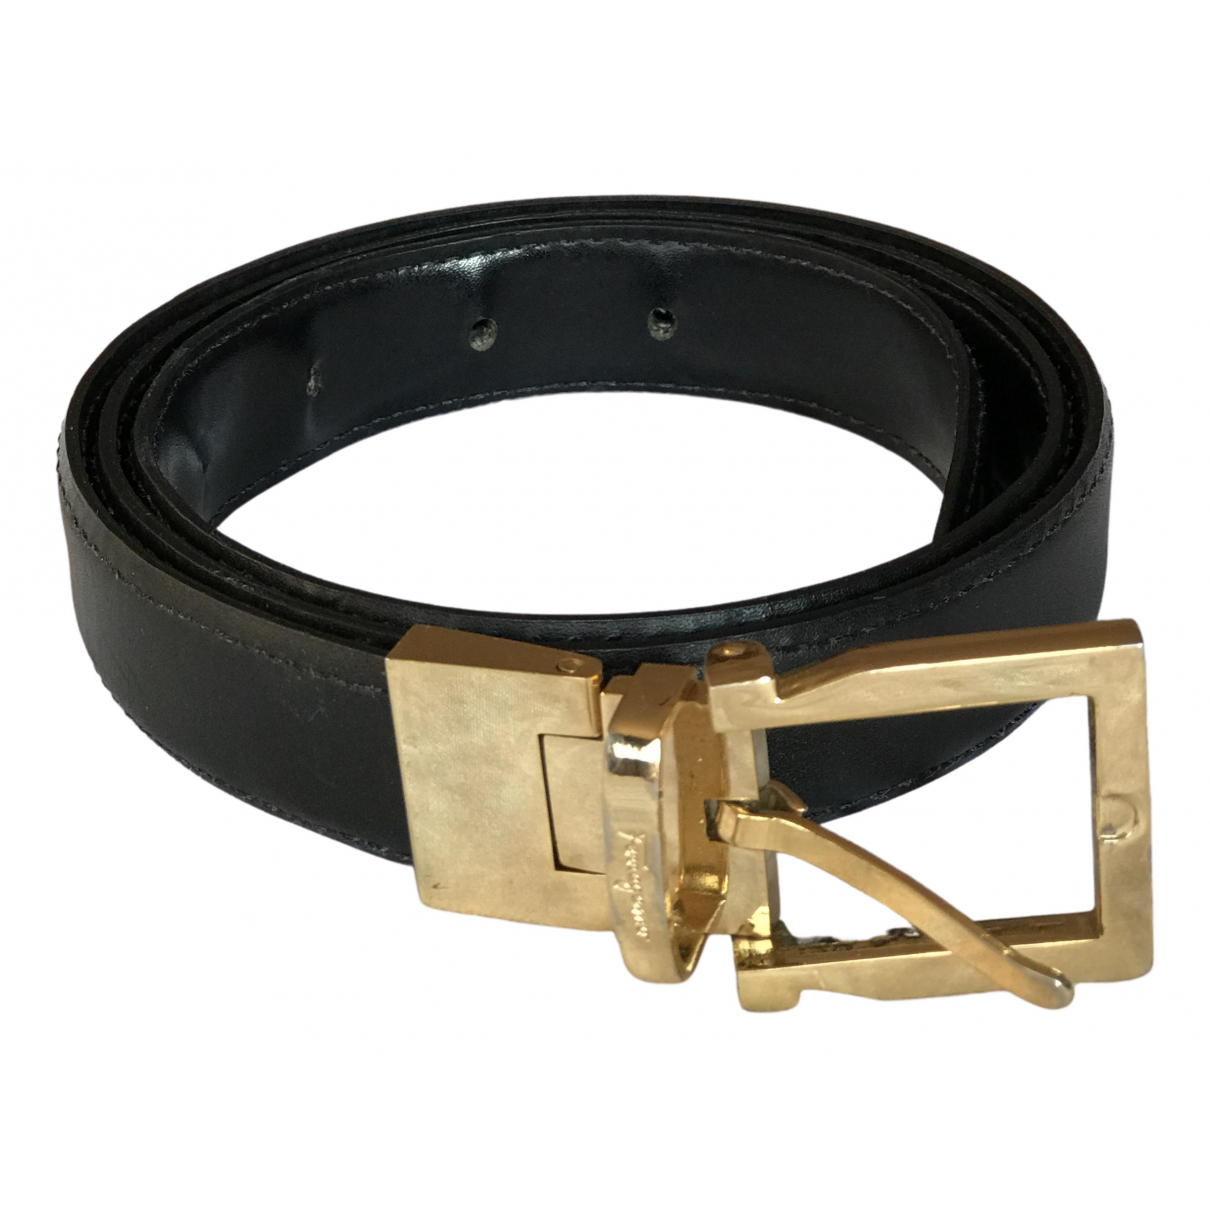 Salvatore Ferragamo \N Black Leather belt for Women M International